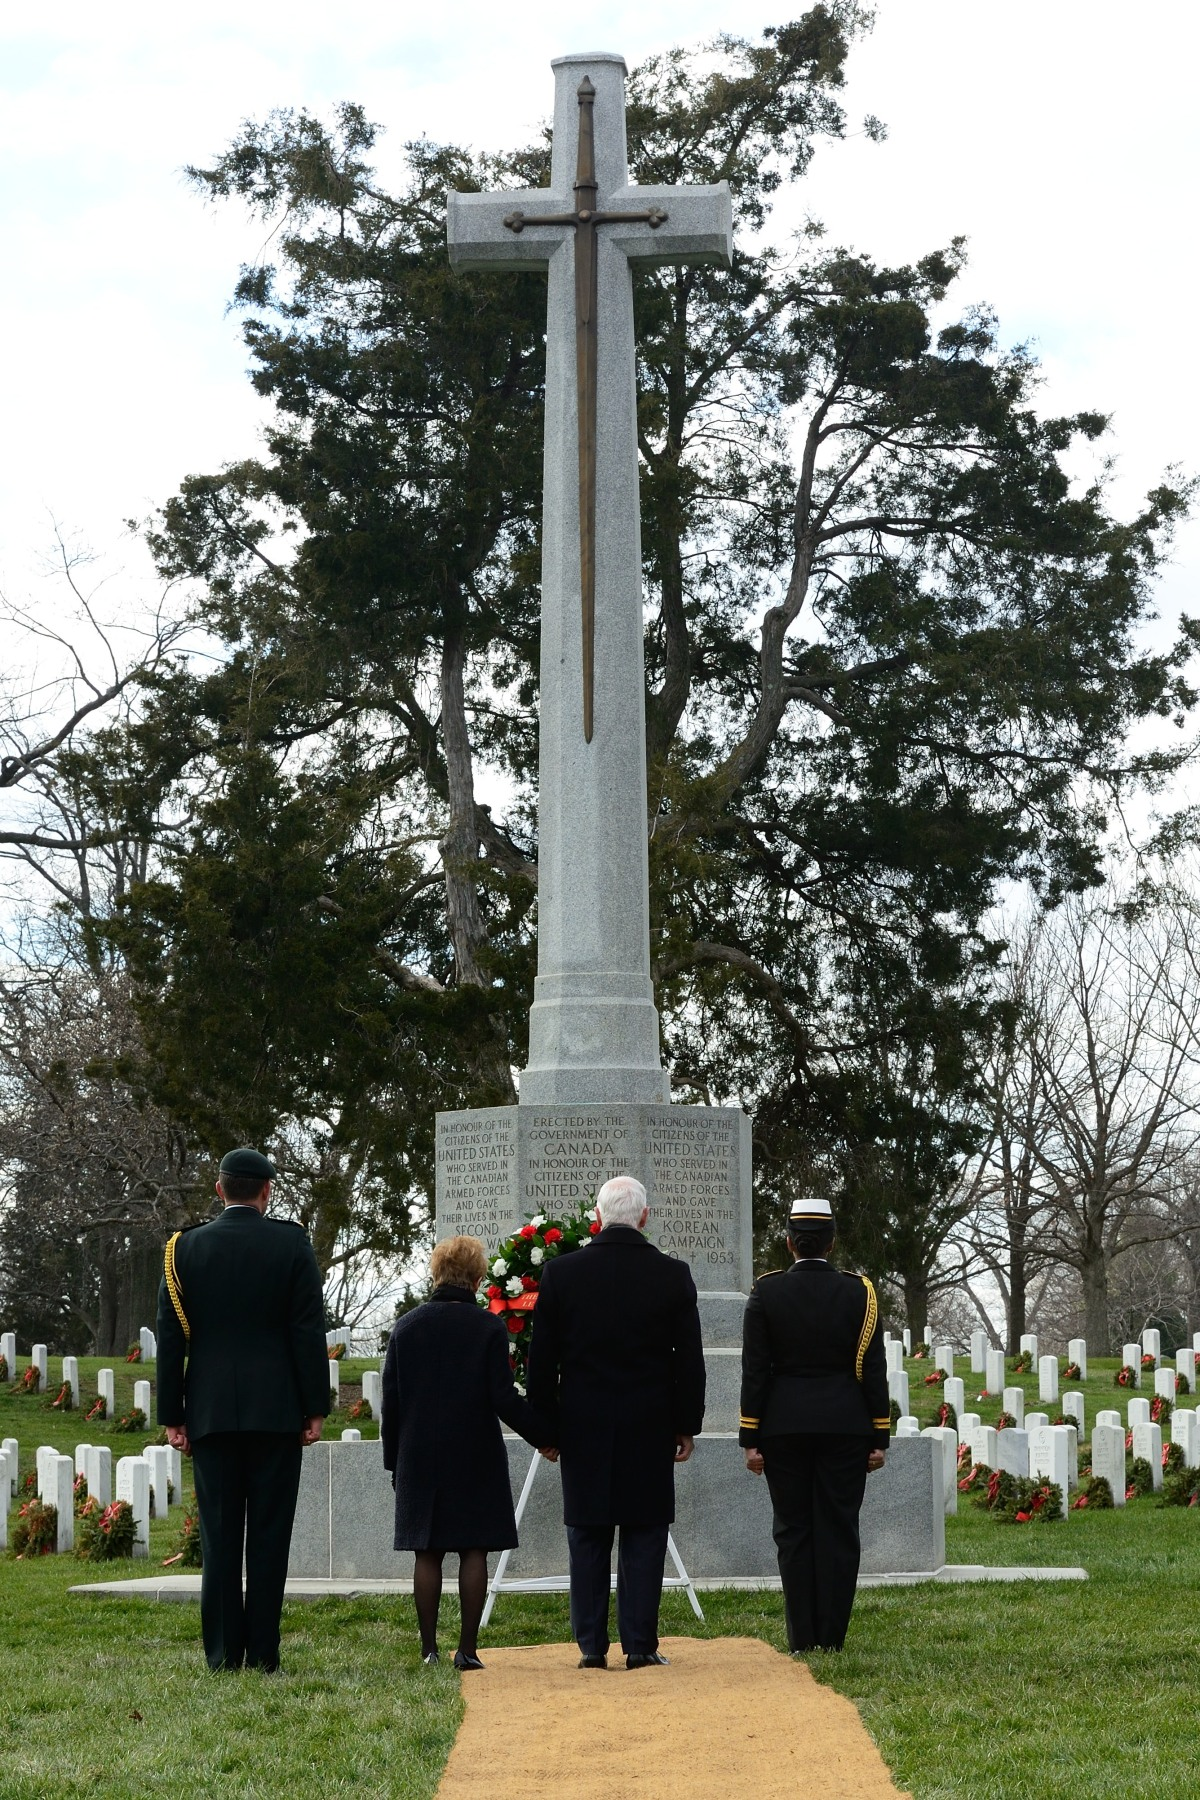 The Canadian Cross of Sacrifice honours citizens of the U.S. who served in the Canadian Armed Forces and gave their lives in World Wars I and II, and the Korean War.